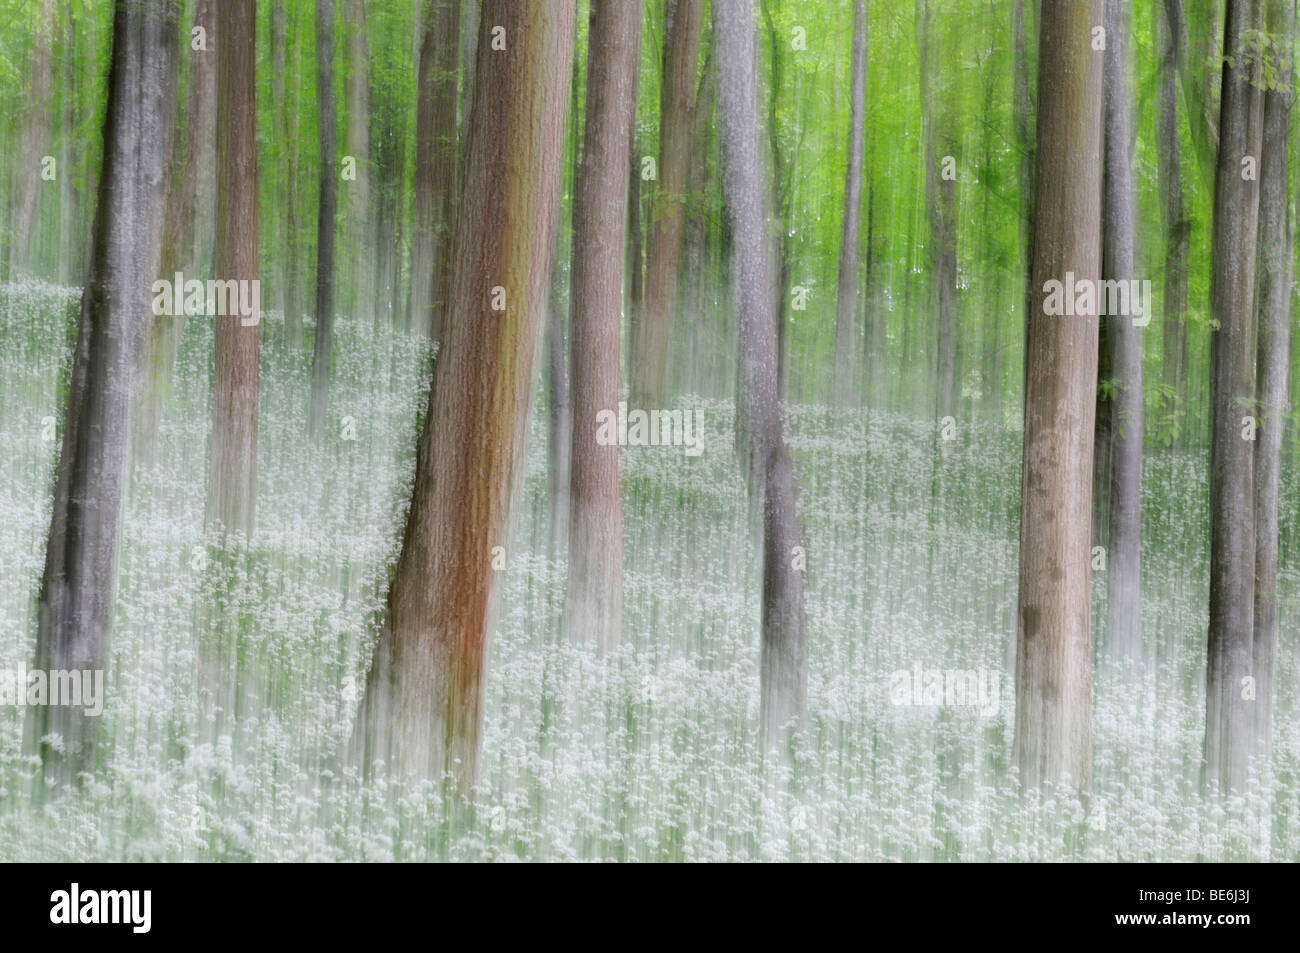 Beech forest (Fagus) with ramson field, blurred - Stock Image